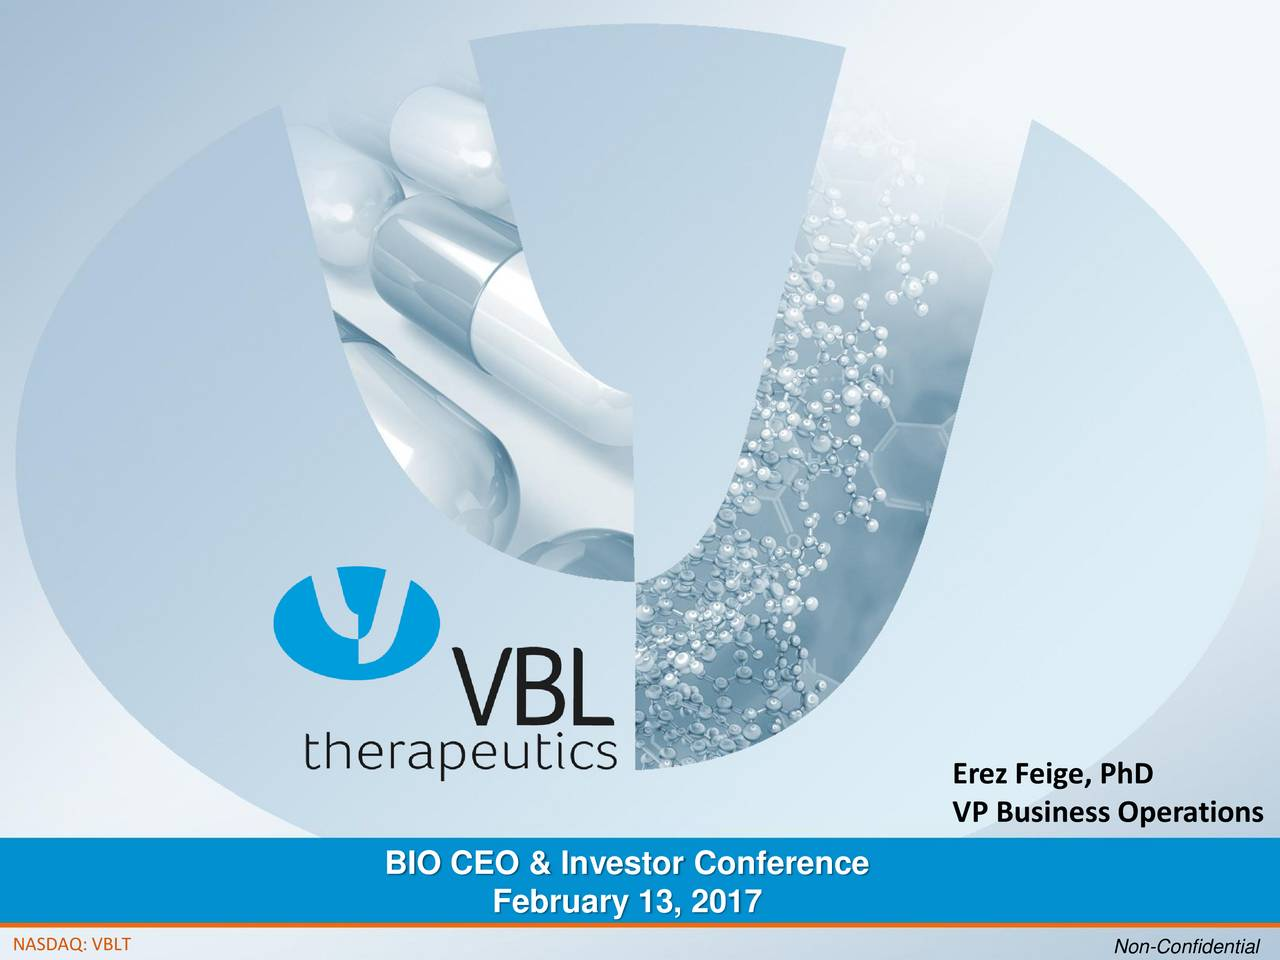 VP Business Operations BIO CEO & Investor Conference February 13, 2017